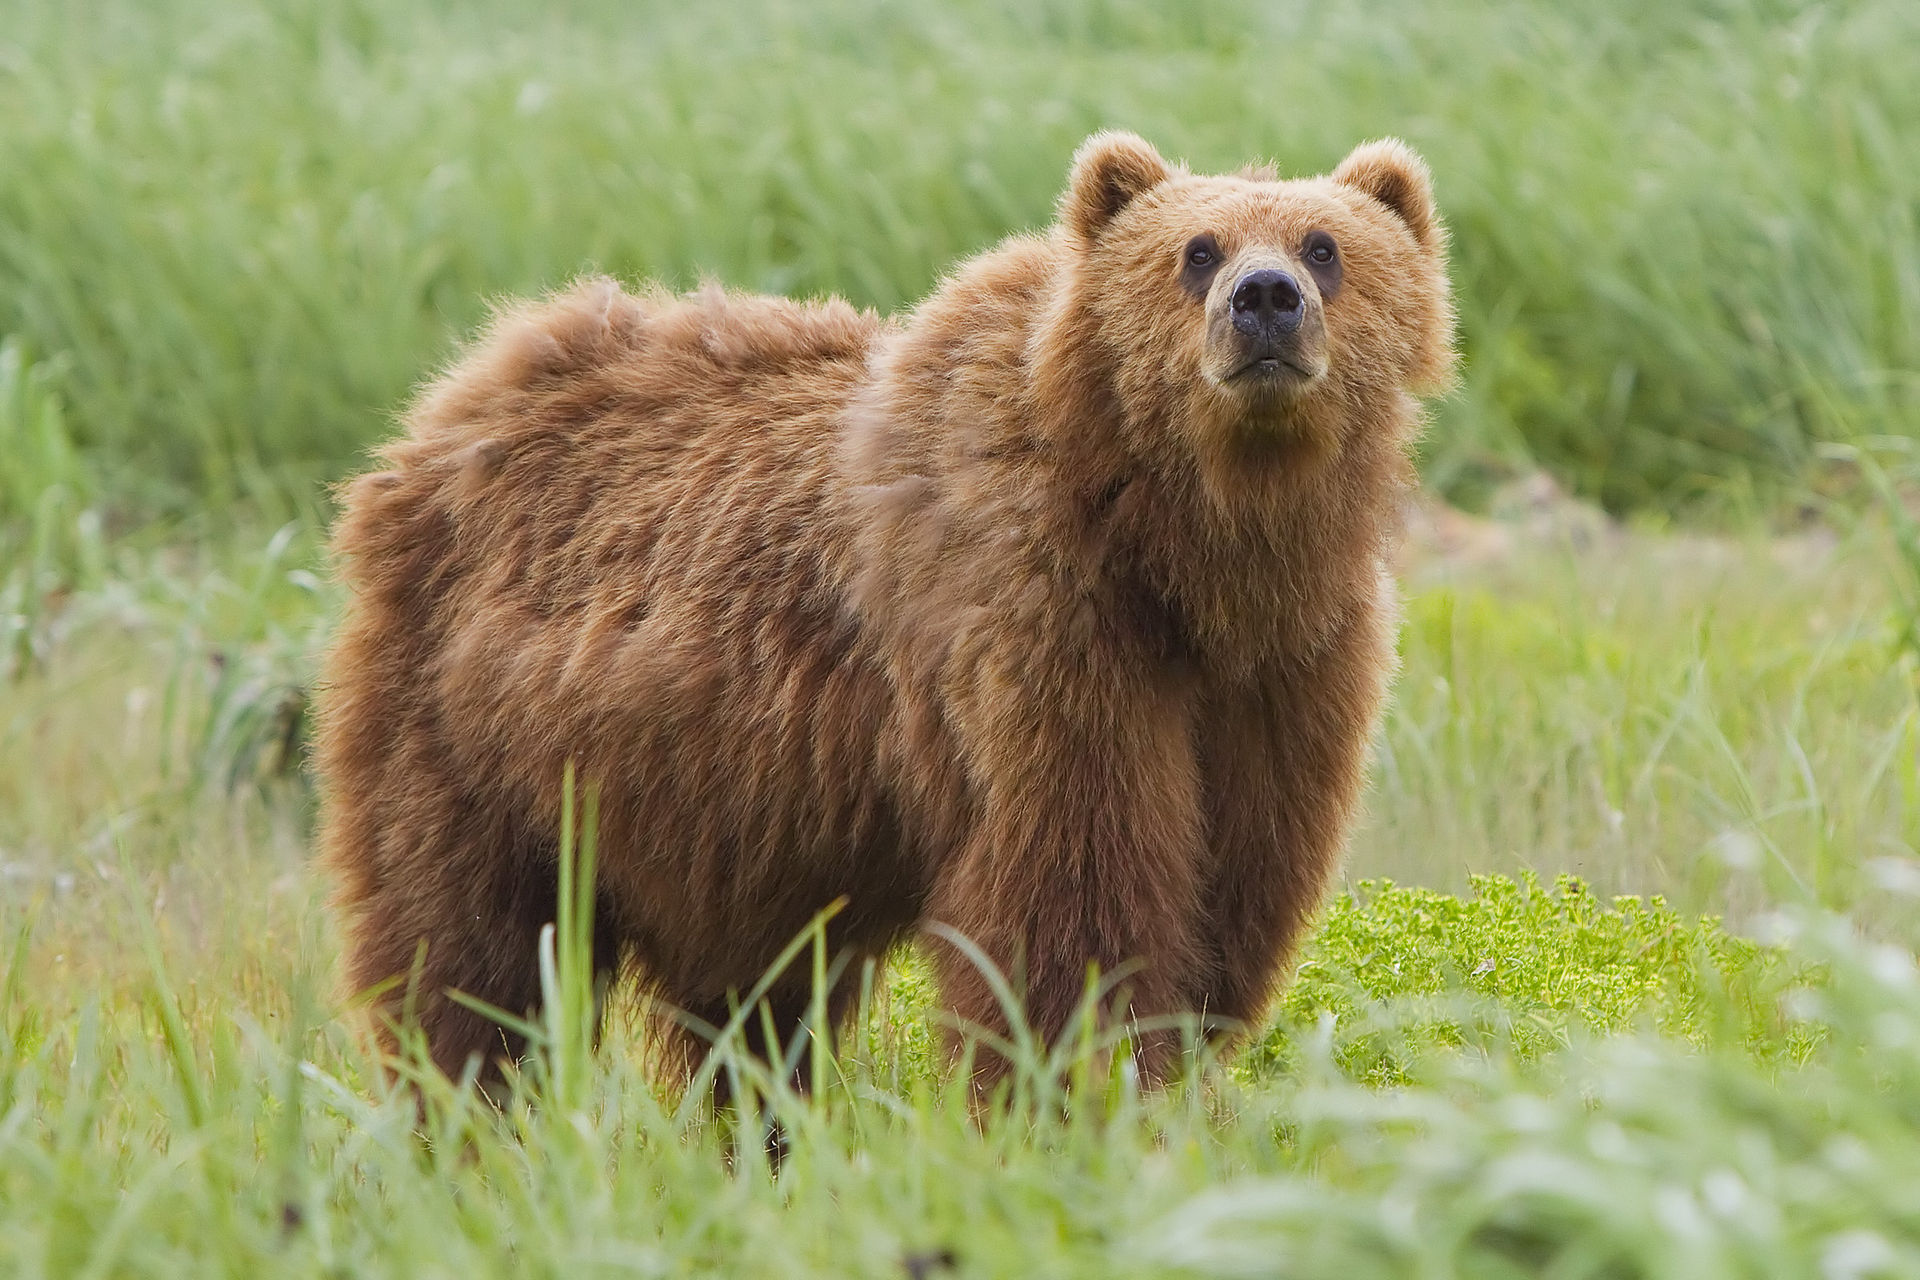 Kodiak bear at Kodiak National Wildlife Refuge on Kodiak Island, Alaska. Photo credit: Wikipedia.